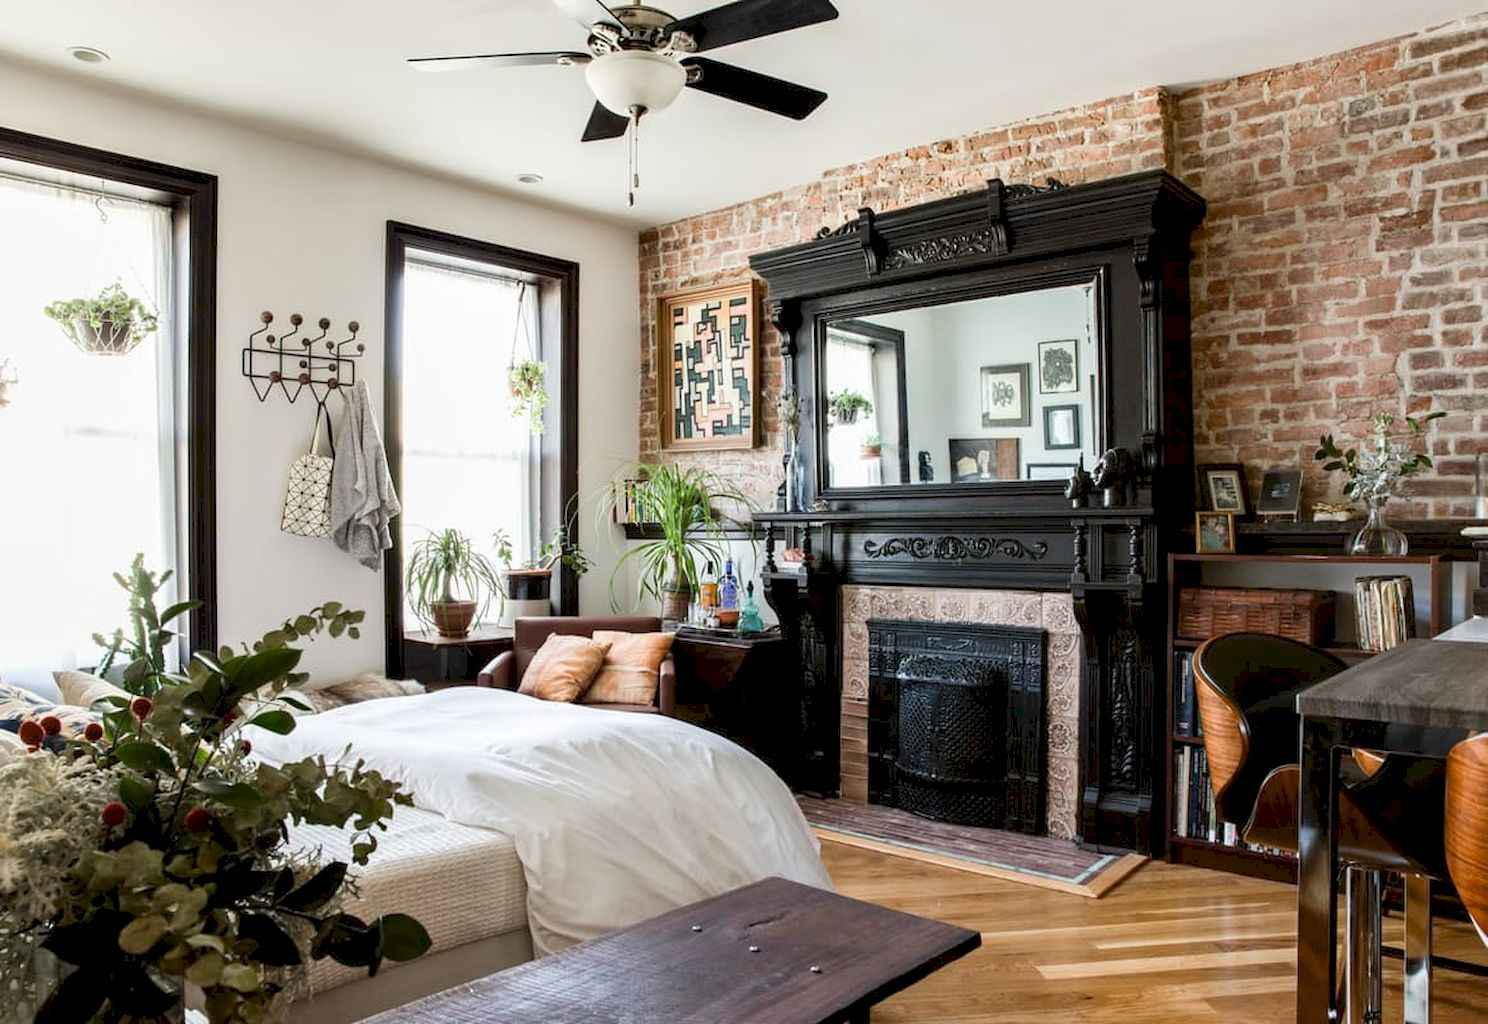 Amazing small first apartment decorating ideas (73)